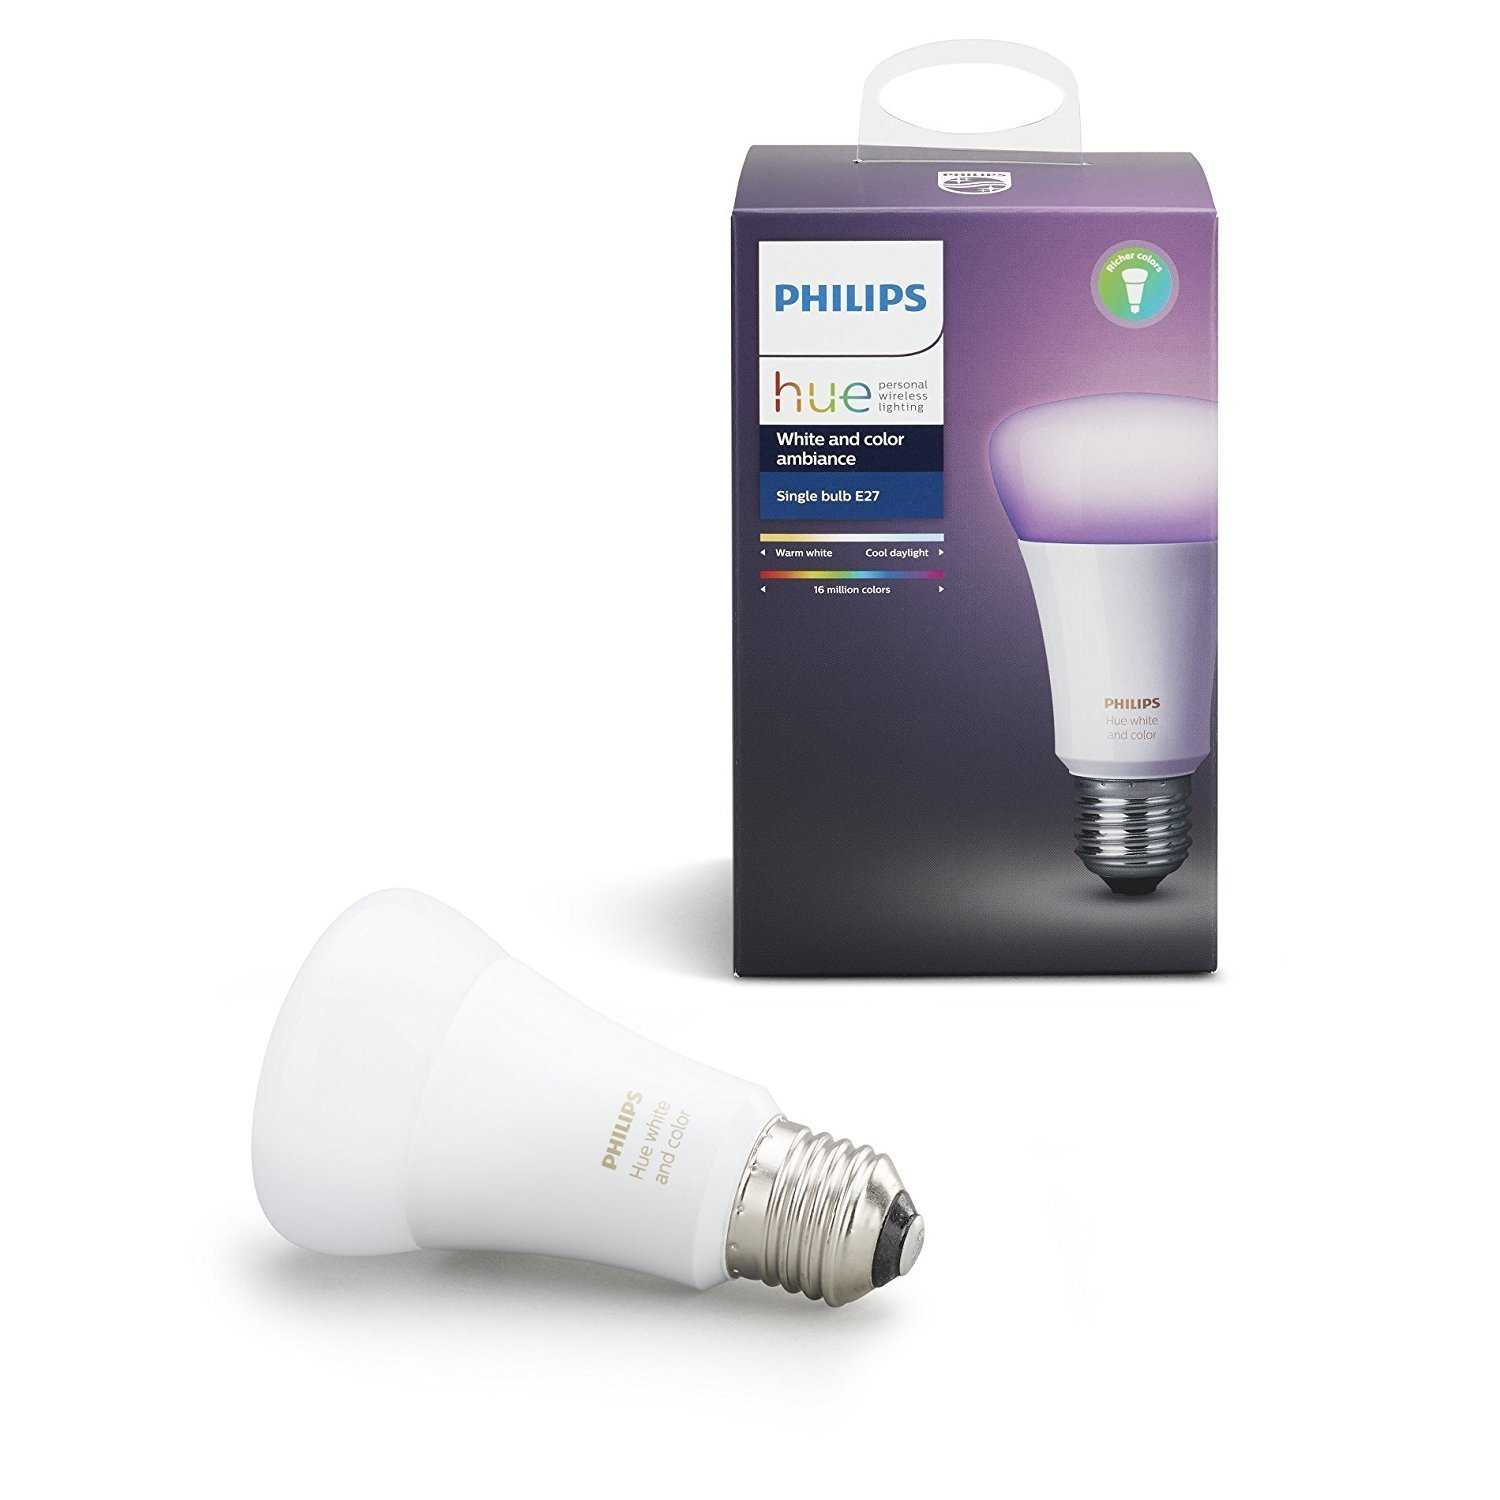 amazon de philips hue white and color ambiance e27 led lampe dreierpack fuer 9999 euro